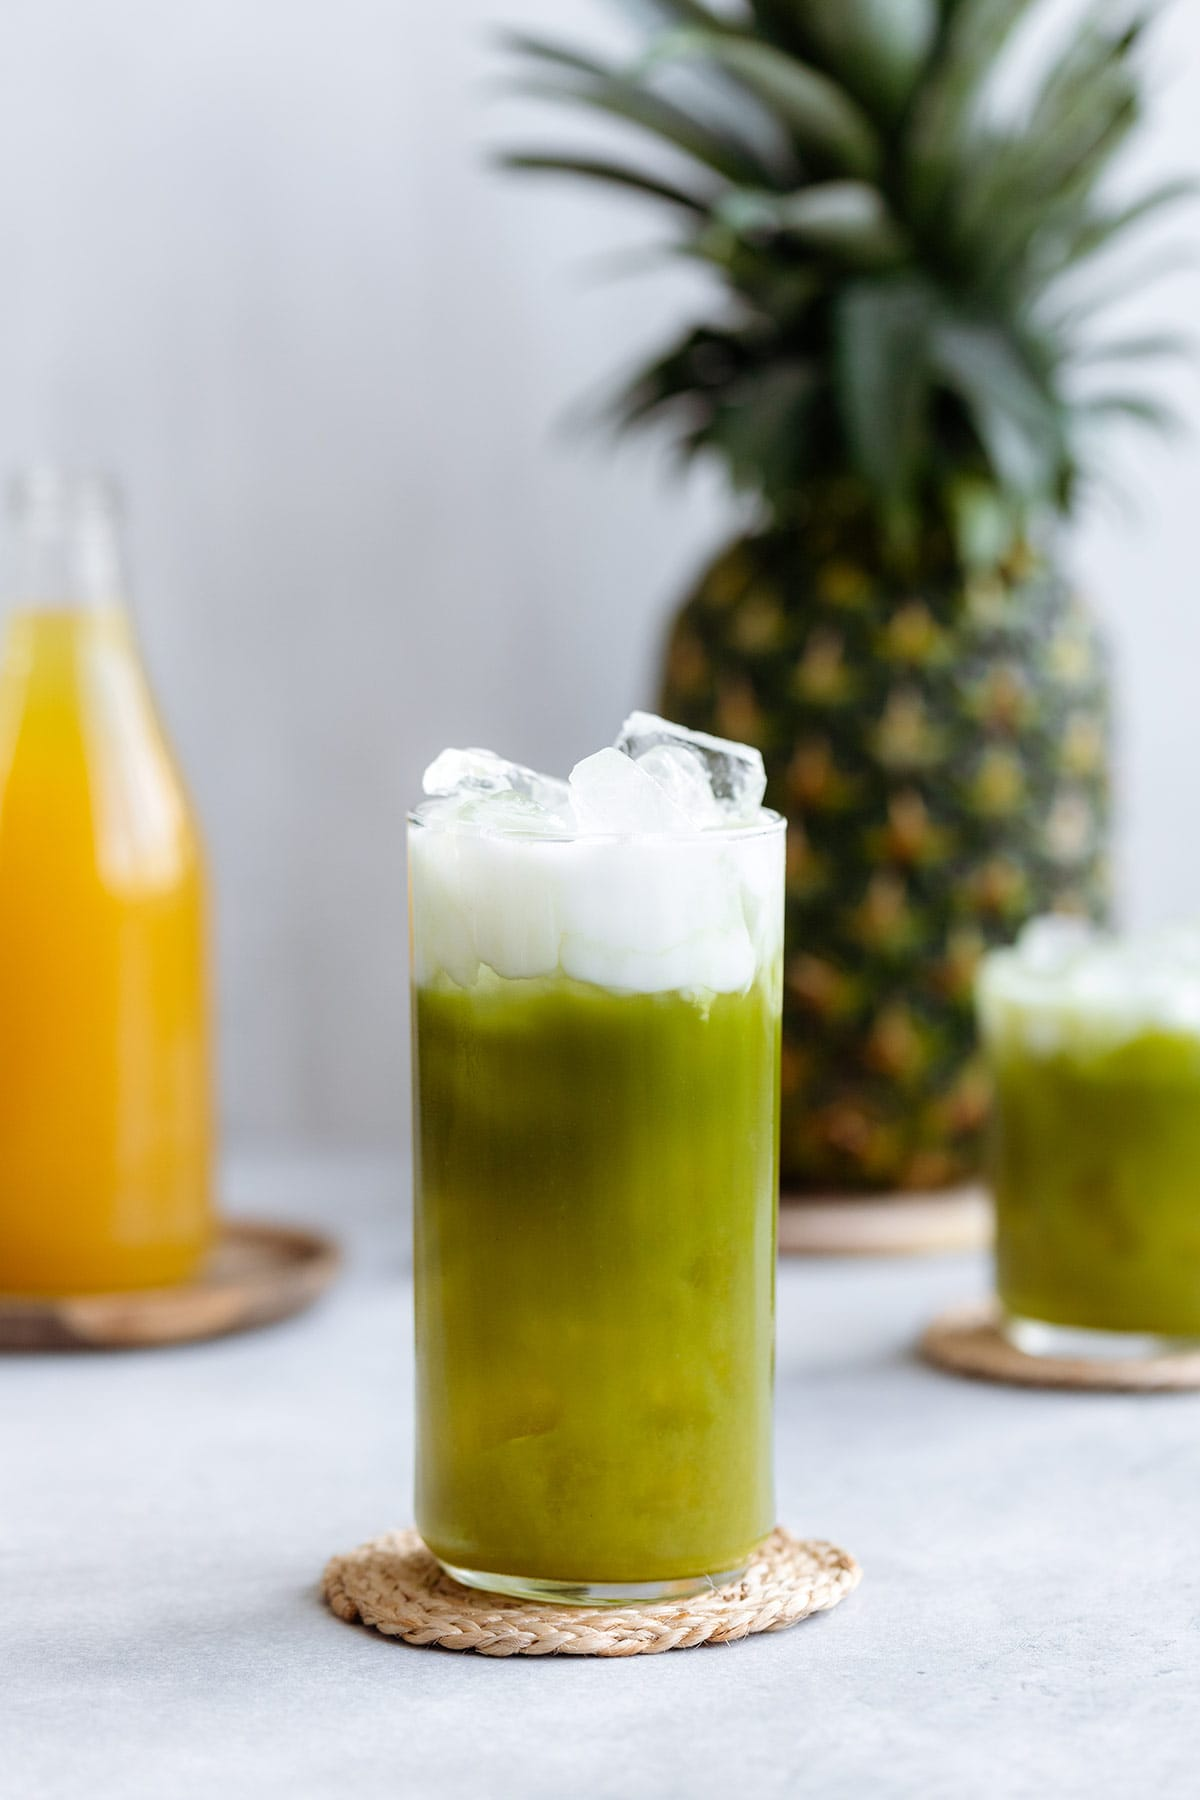 Pineapple matcha drink with coconut milk on top in a tall glass on a white background.